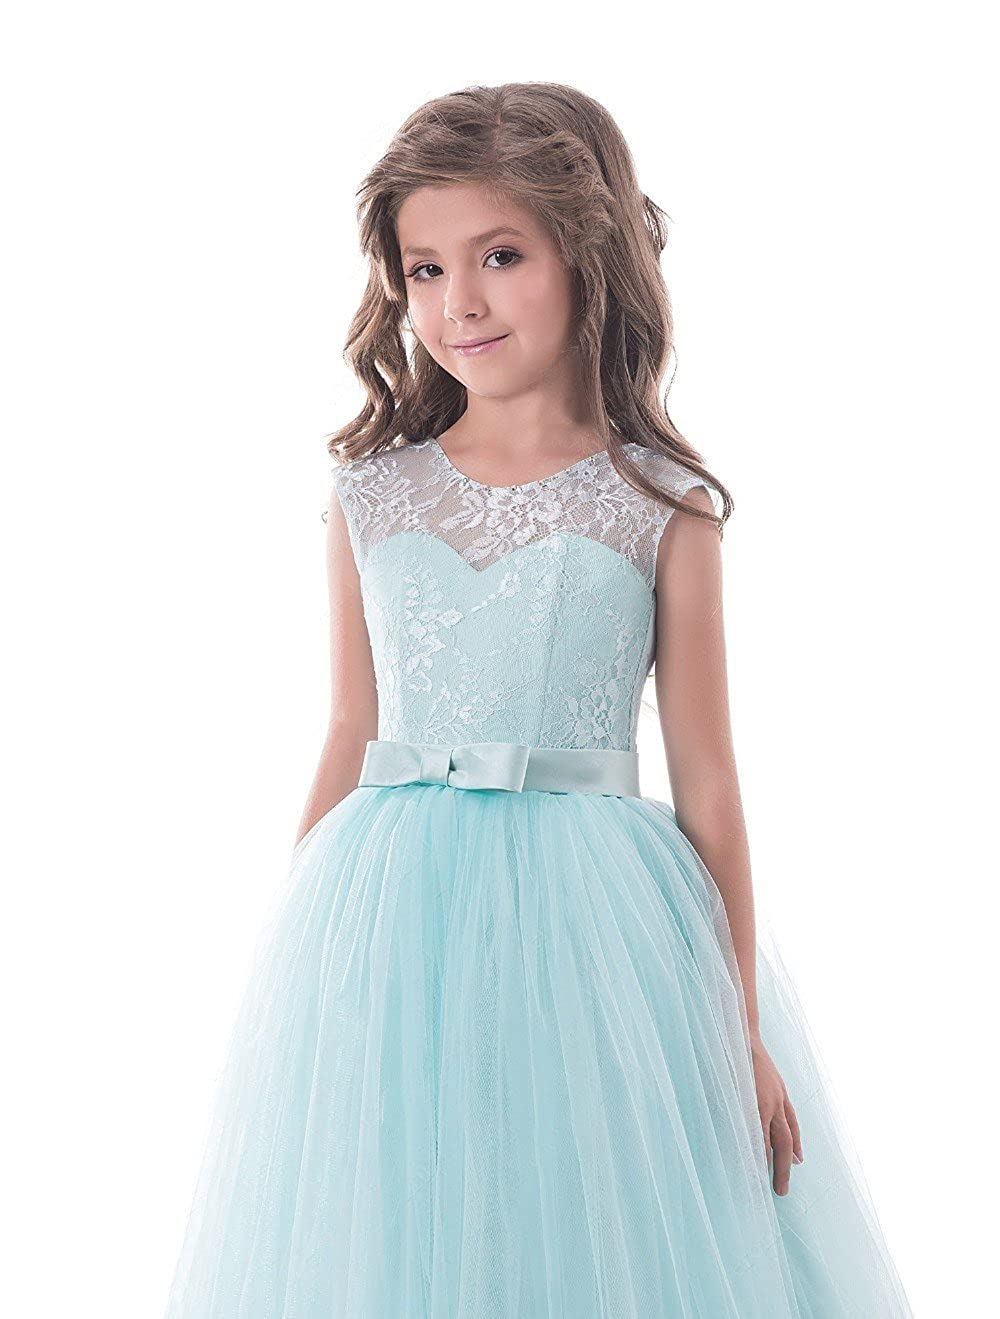 842ca45348 Amazon.com  Lilis Lovely Princess Tulle Lace Appliques Flower Girls Dresses  Sleeveless Pageant Gowns Sky Blue  Clothing